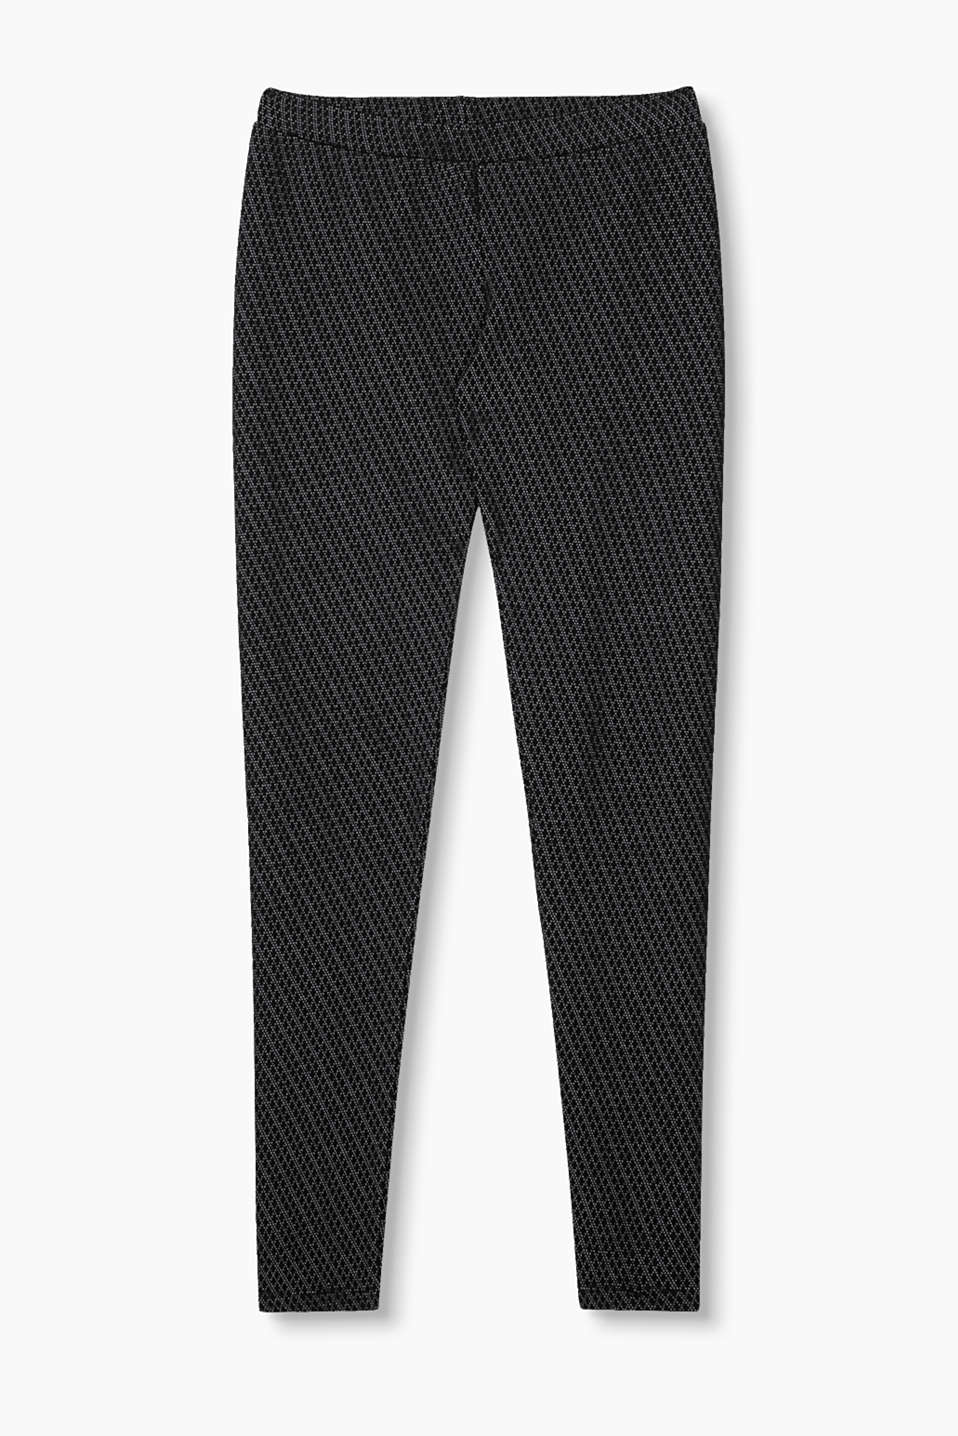 Esprit - Leggings + openwork pattern, cotton blend